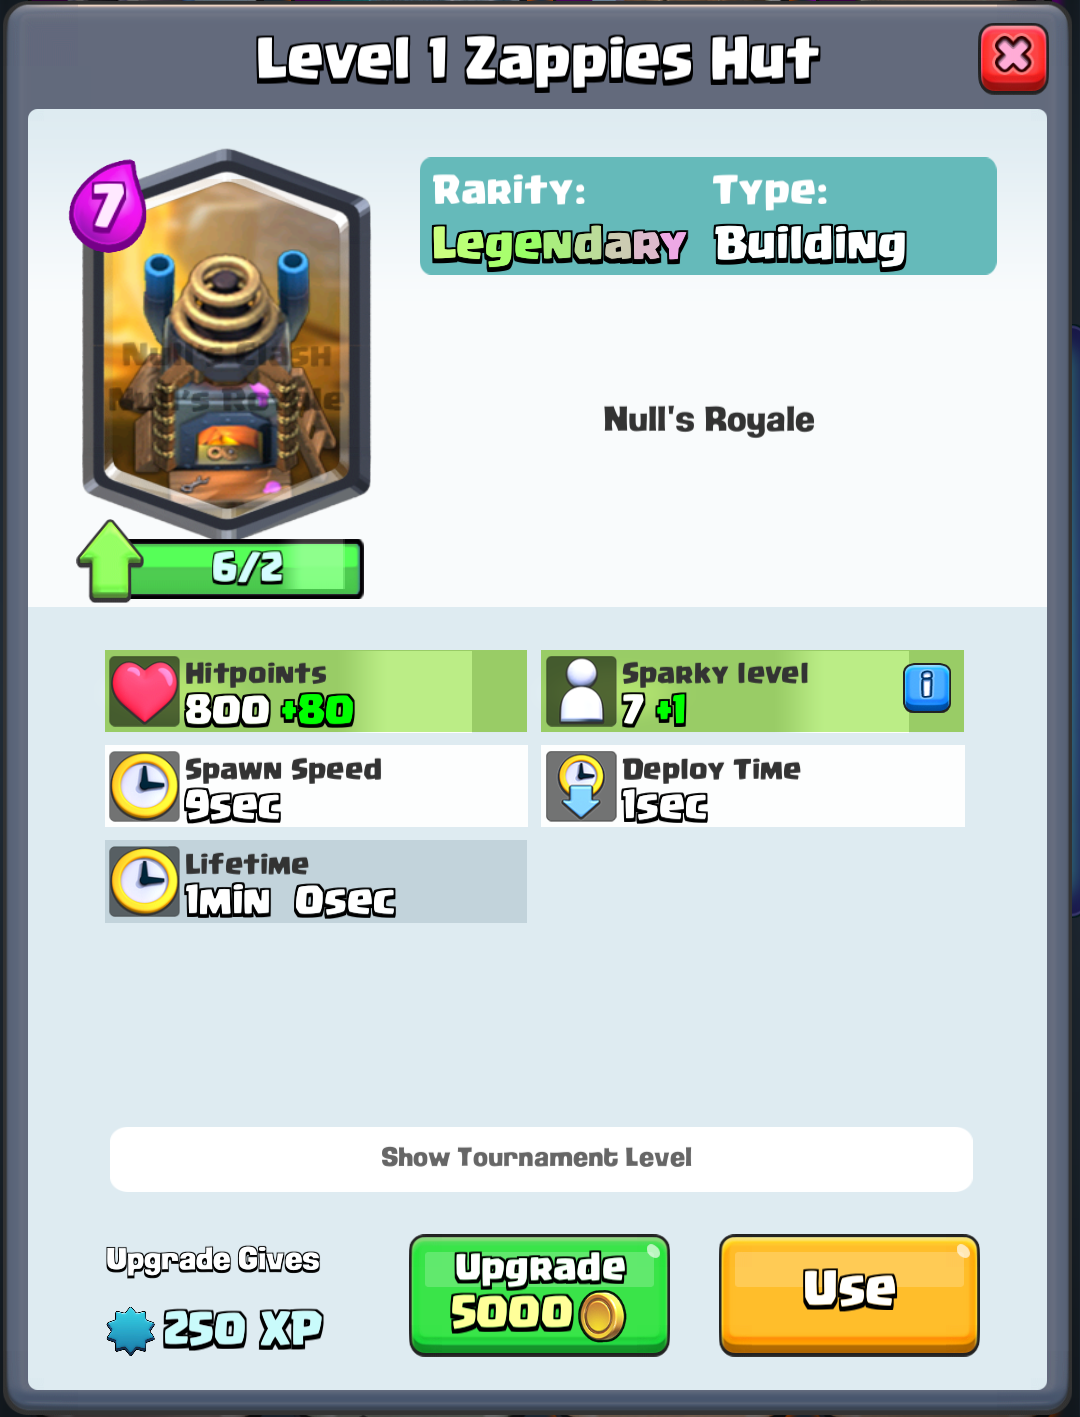 Zappies Hut - Nulls Royale